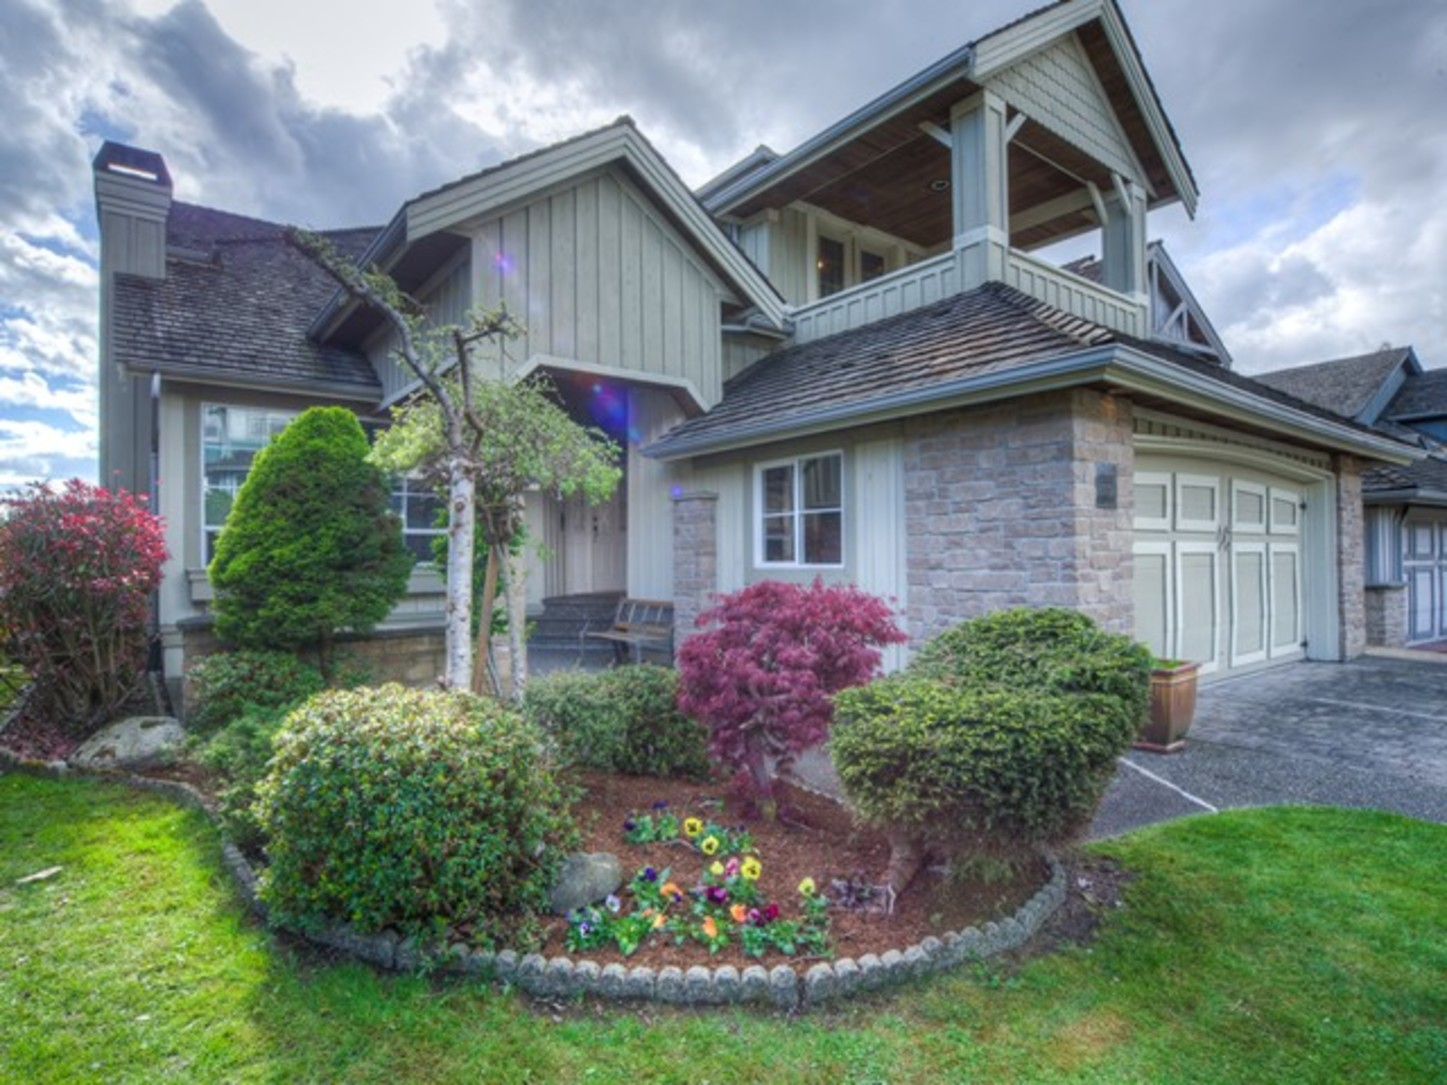 Heritage Woods - Landscape at 15338 Sequoia Drive, Heritage Woods PM, Port Moody